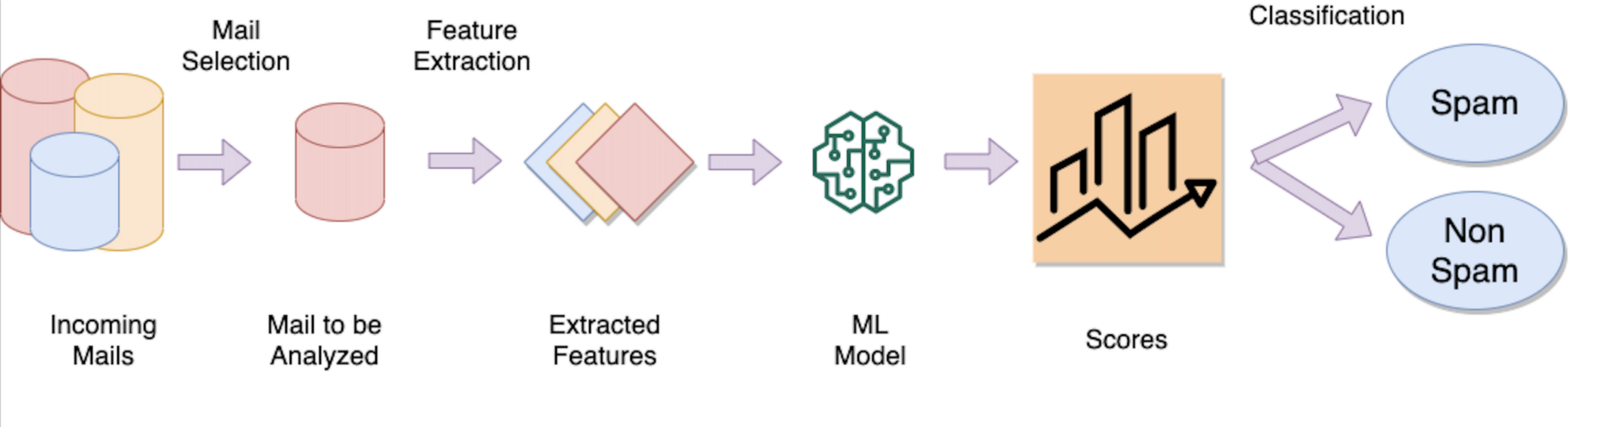 spam email filtering using machine learning image 3